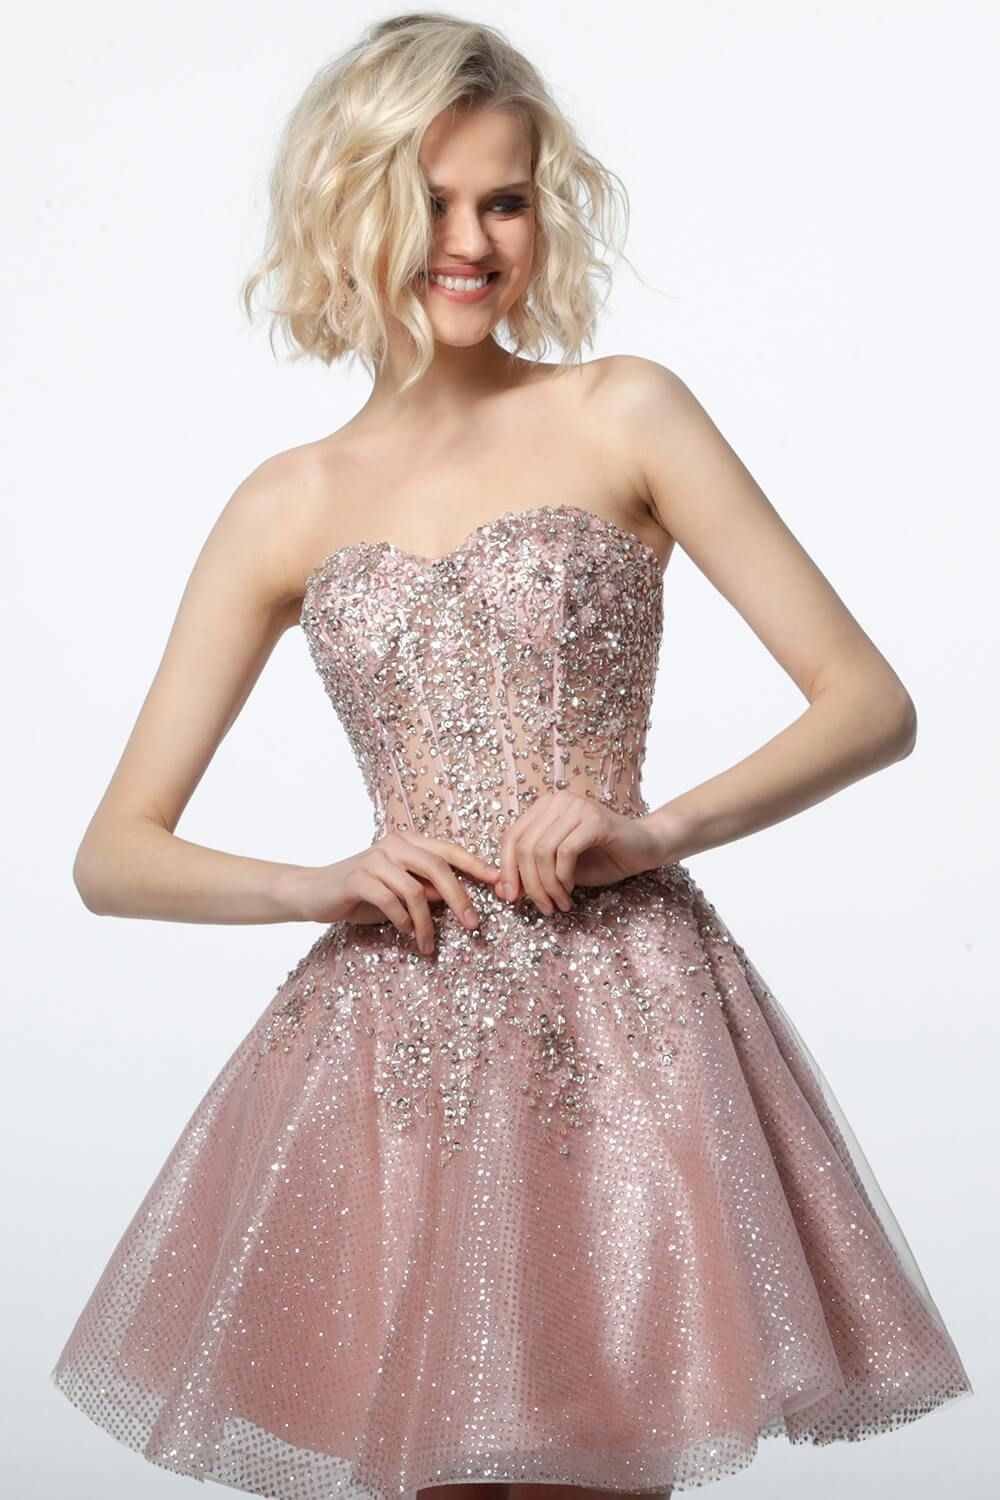 Jovani 3622 Sweetheart Neckline Fit And Flare Homecoming Dress Strapless Dresses Short Prom Dresses Short Strapless Cocktail Dresses [ 1500 x 1000 Pixel ]